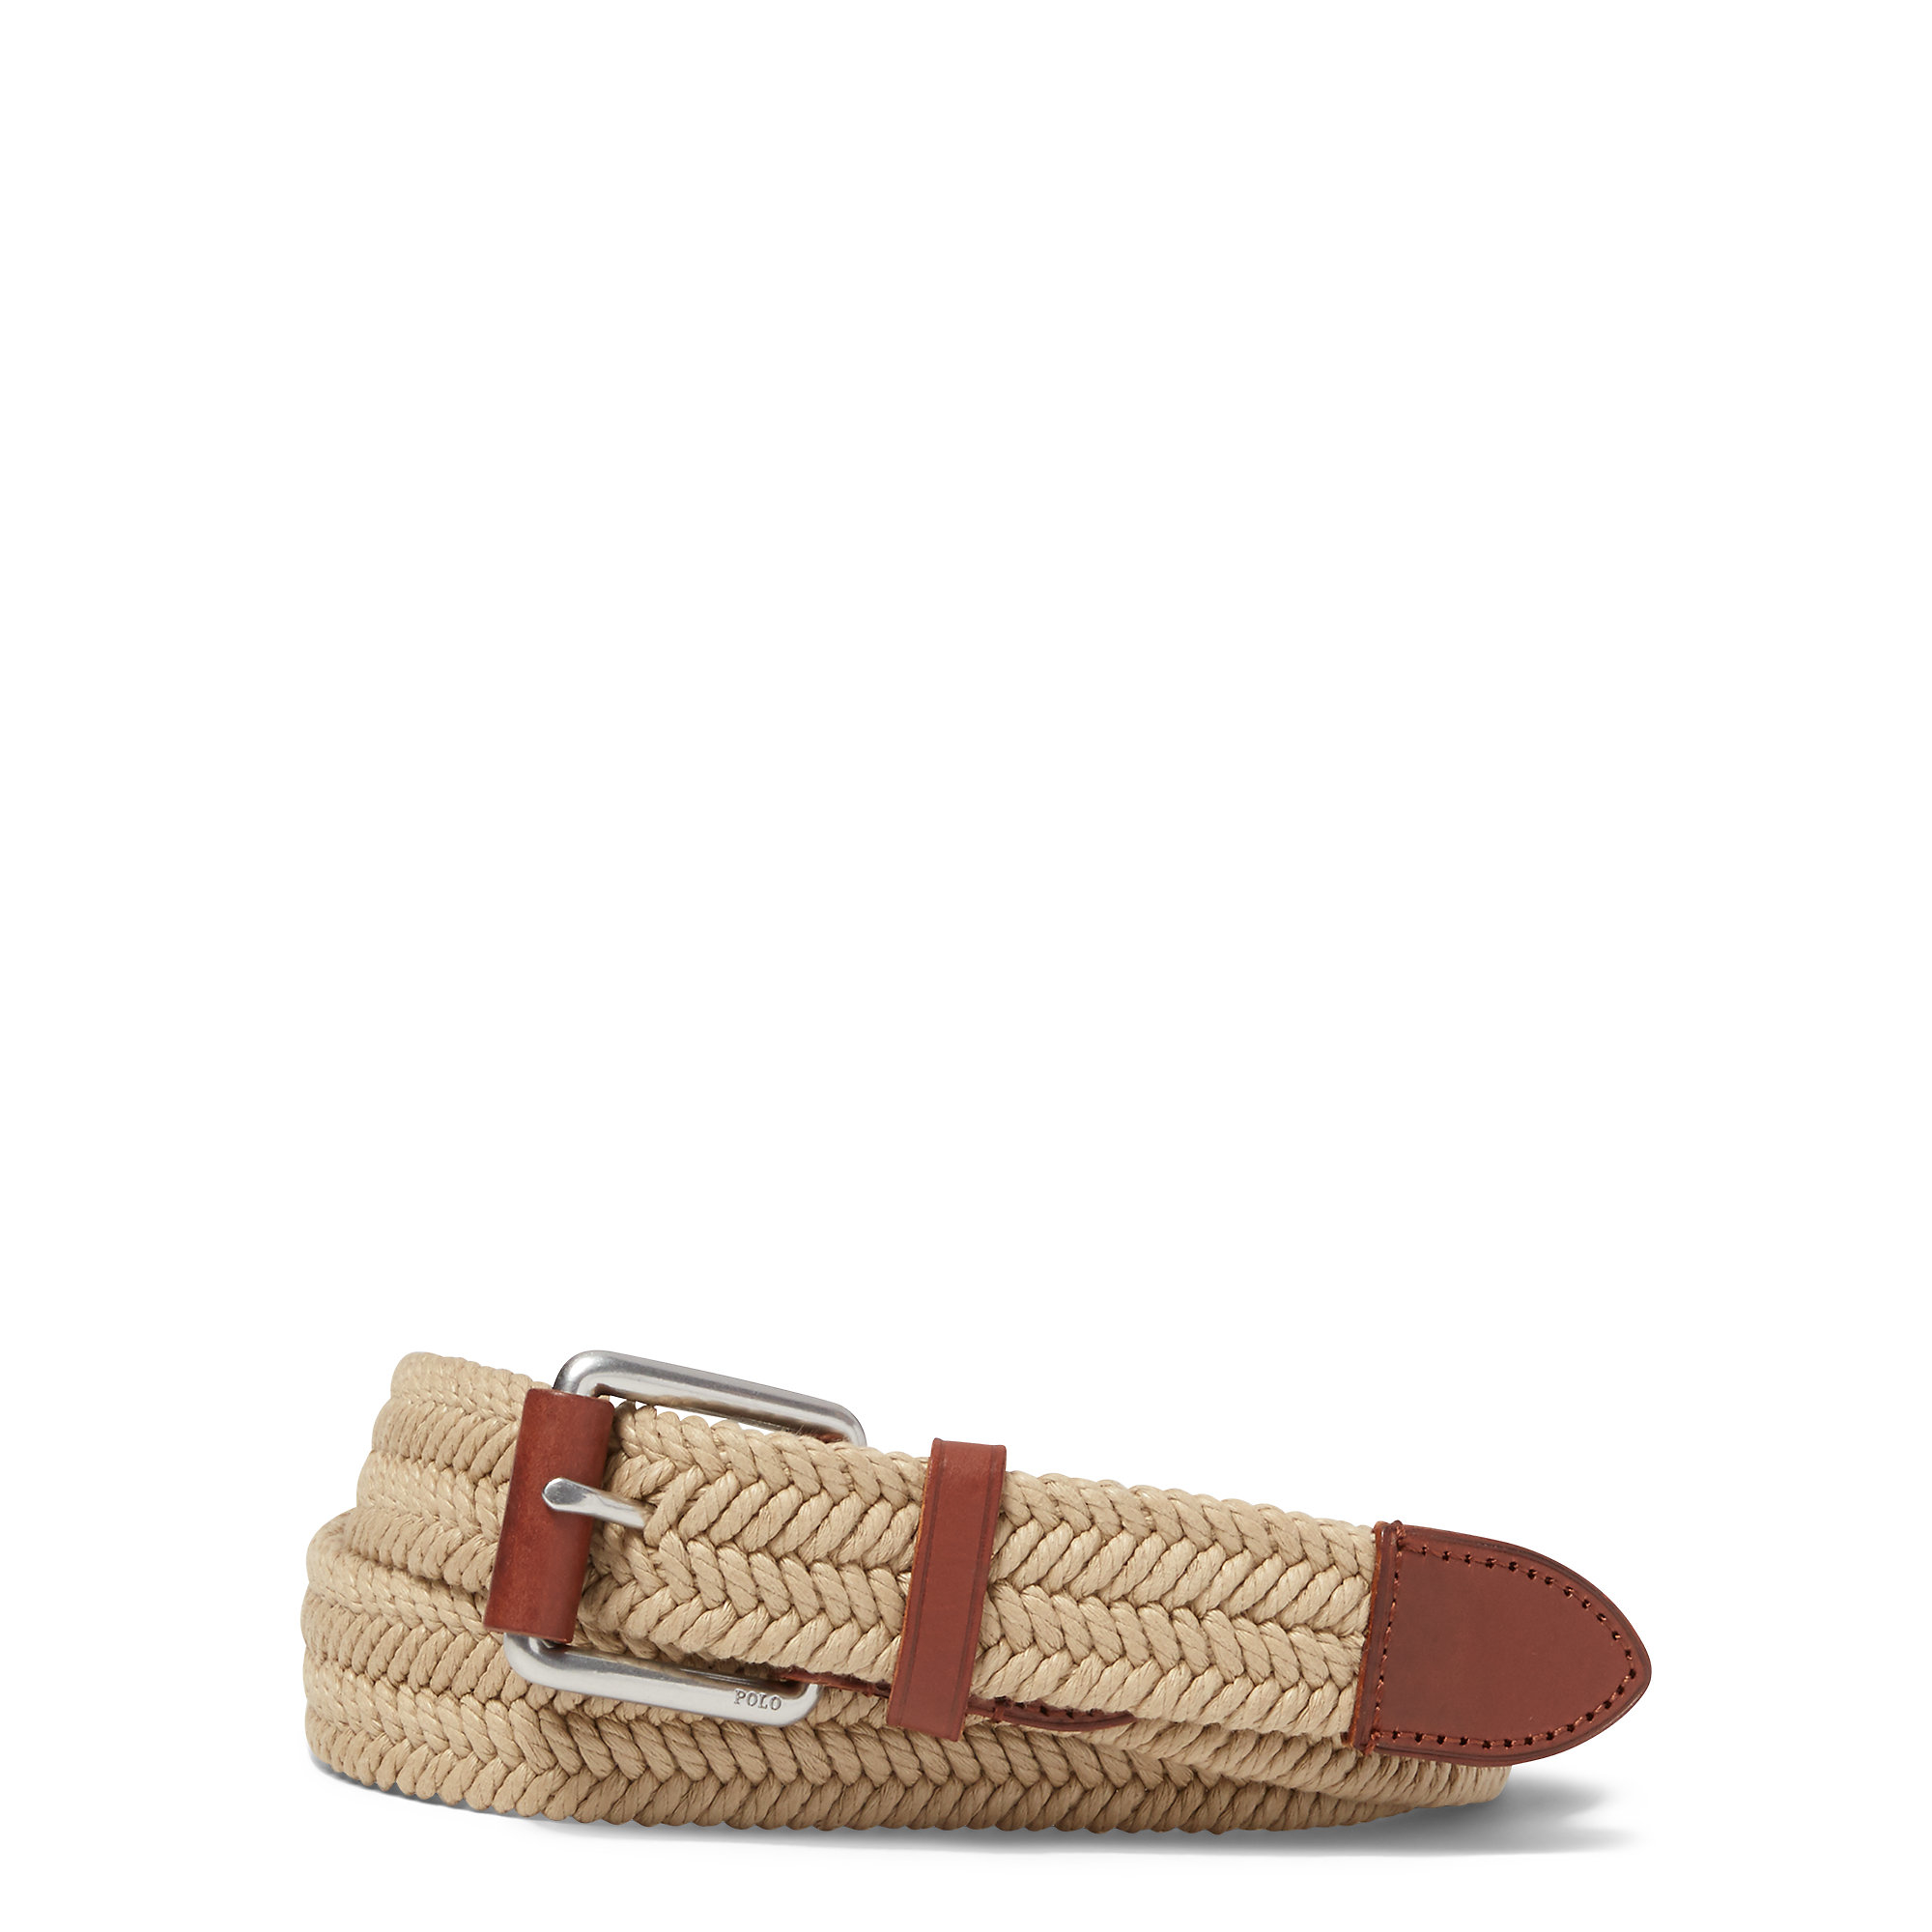 Shop eBay for great deals on Braided % Cotton Belts for Men. You'll find new or used products in Braided % Cotton Belts for Men on eBay. Free shipping on selected items.